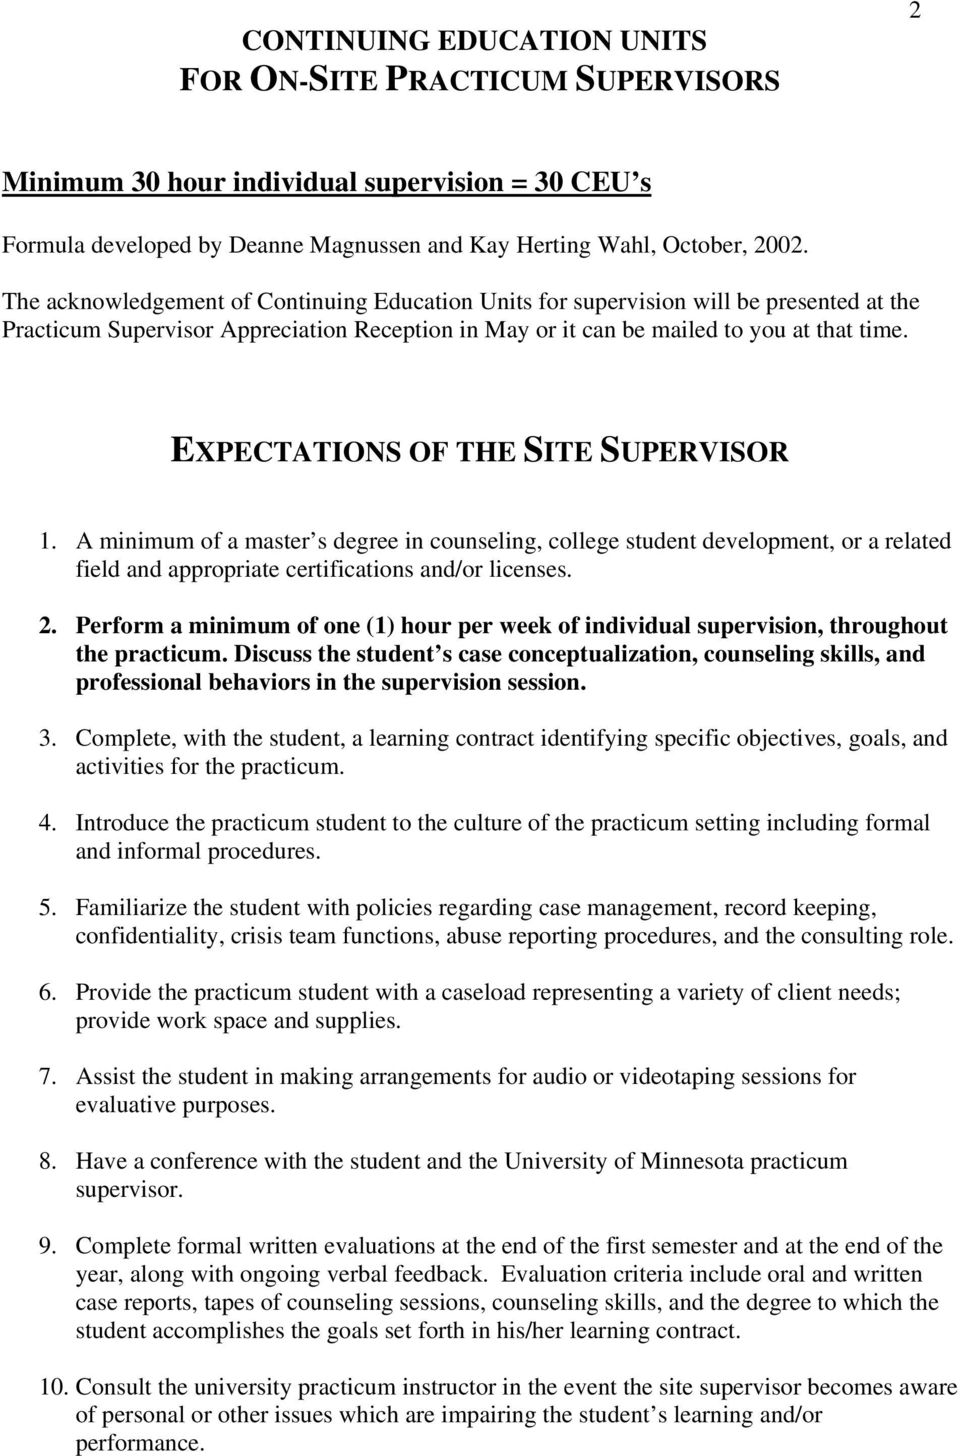 EXPECTATIONS OF THE SITE SUPERVISOR 1. A minimum of a master s degree in counseling, college student development, or a related field and appropriate certifications and/or licenses. 2.